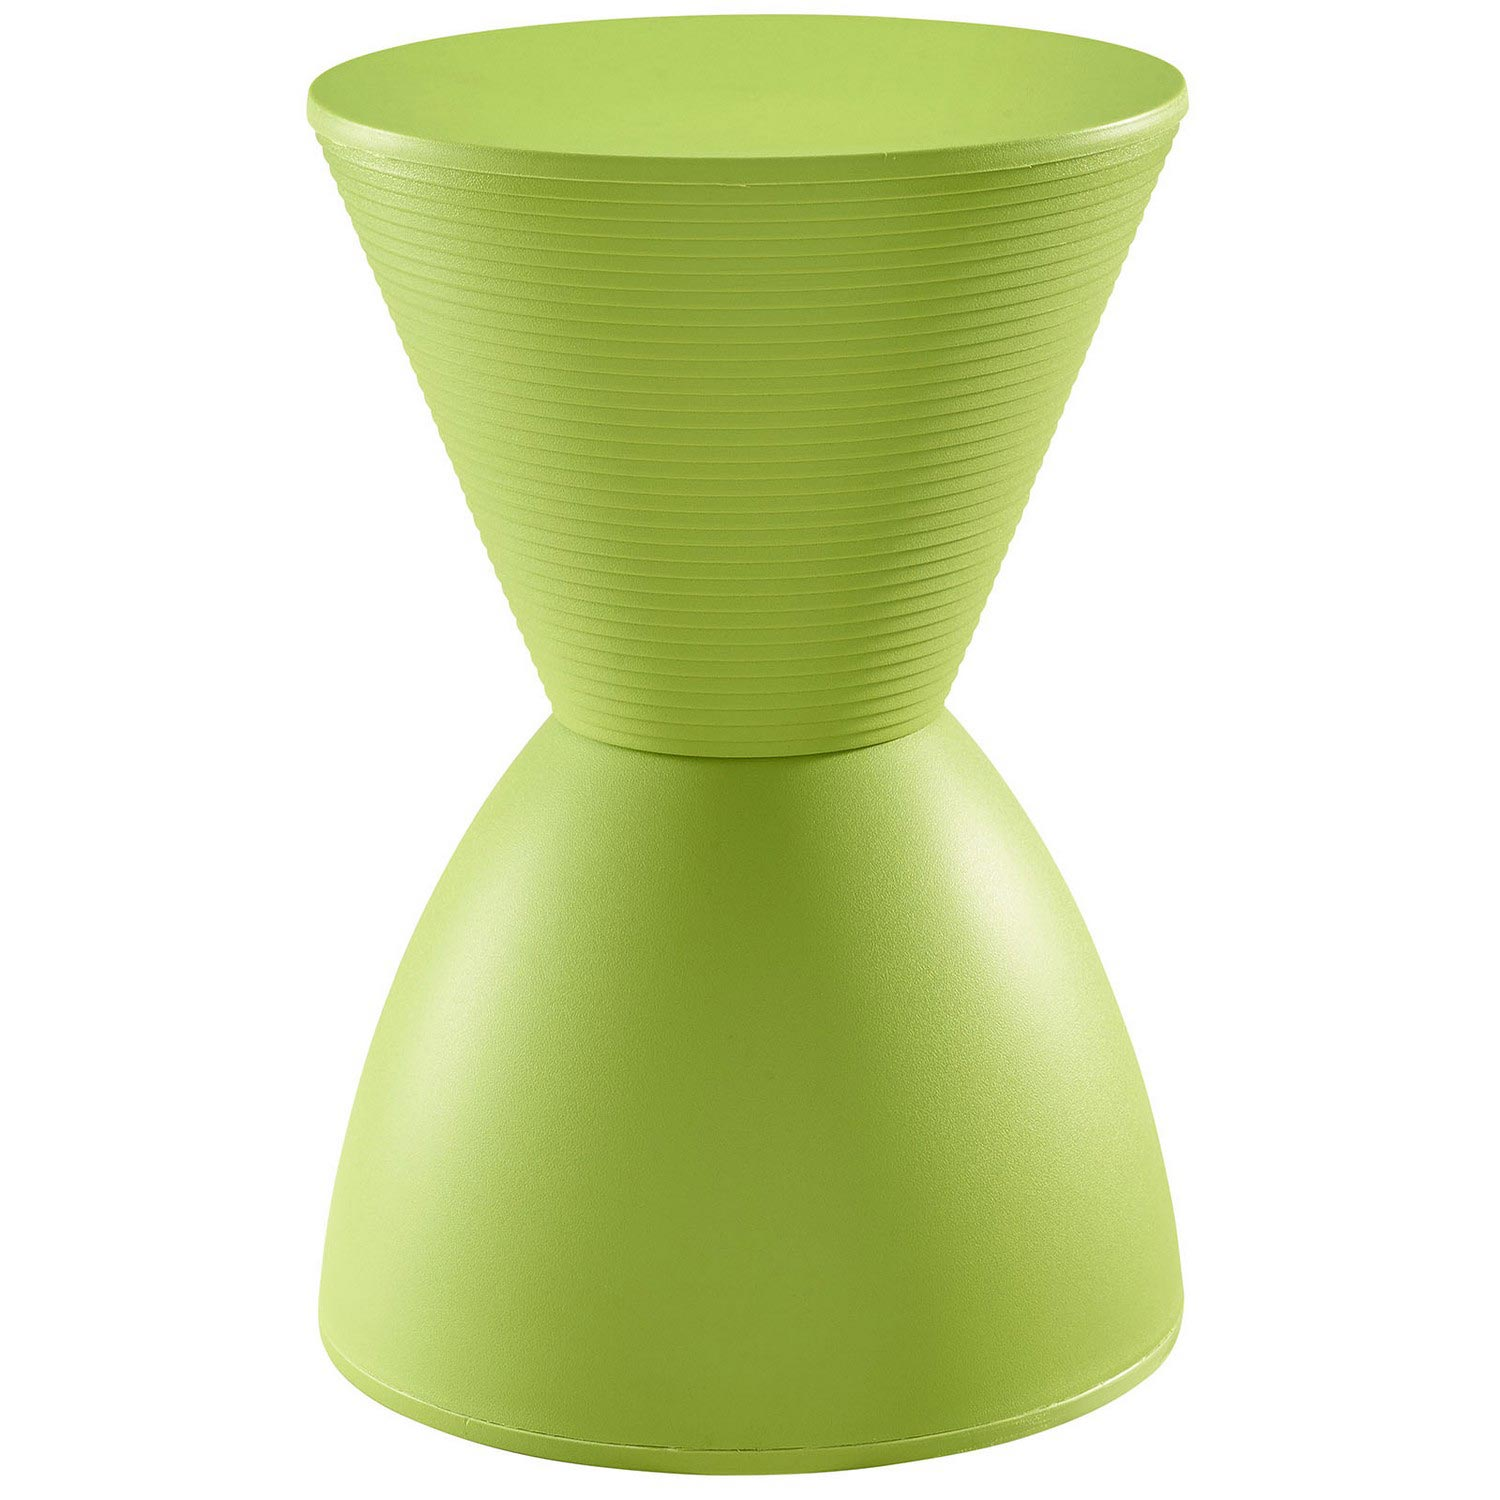 Modway Haste Stool - Green